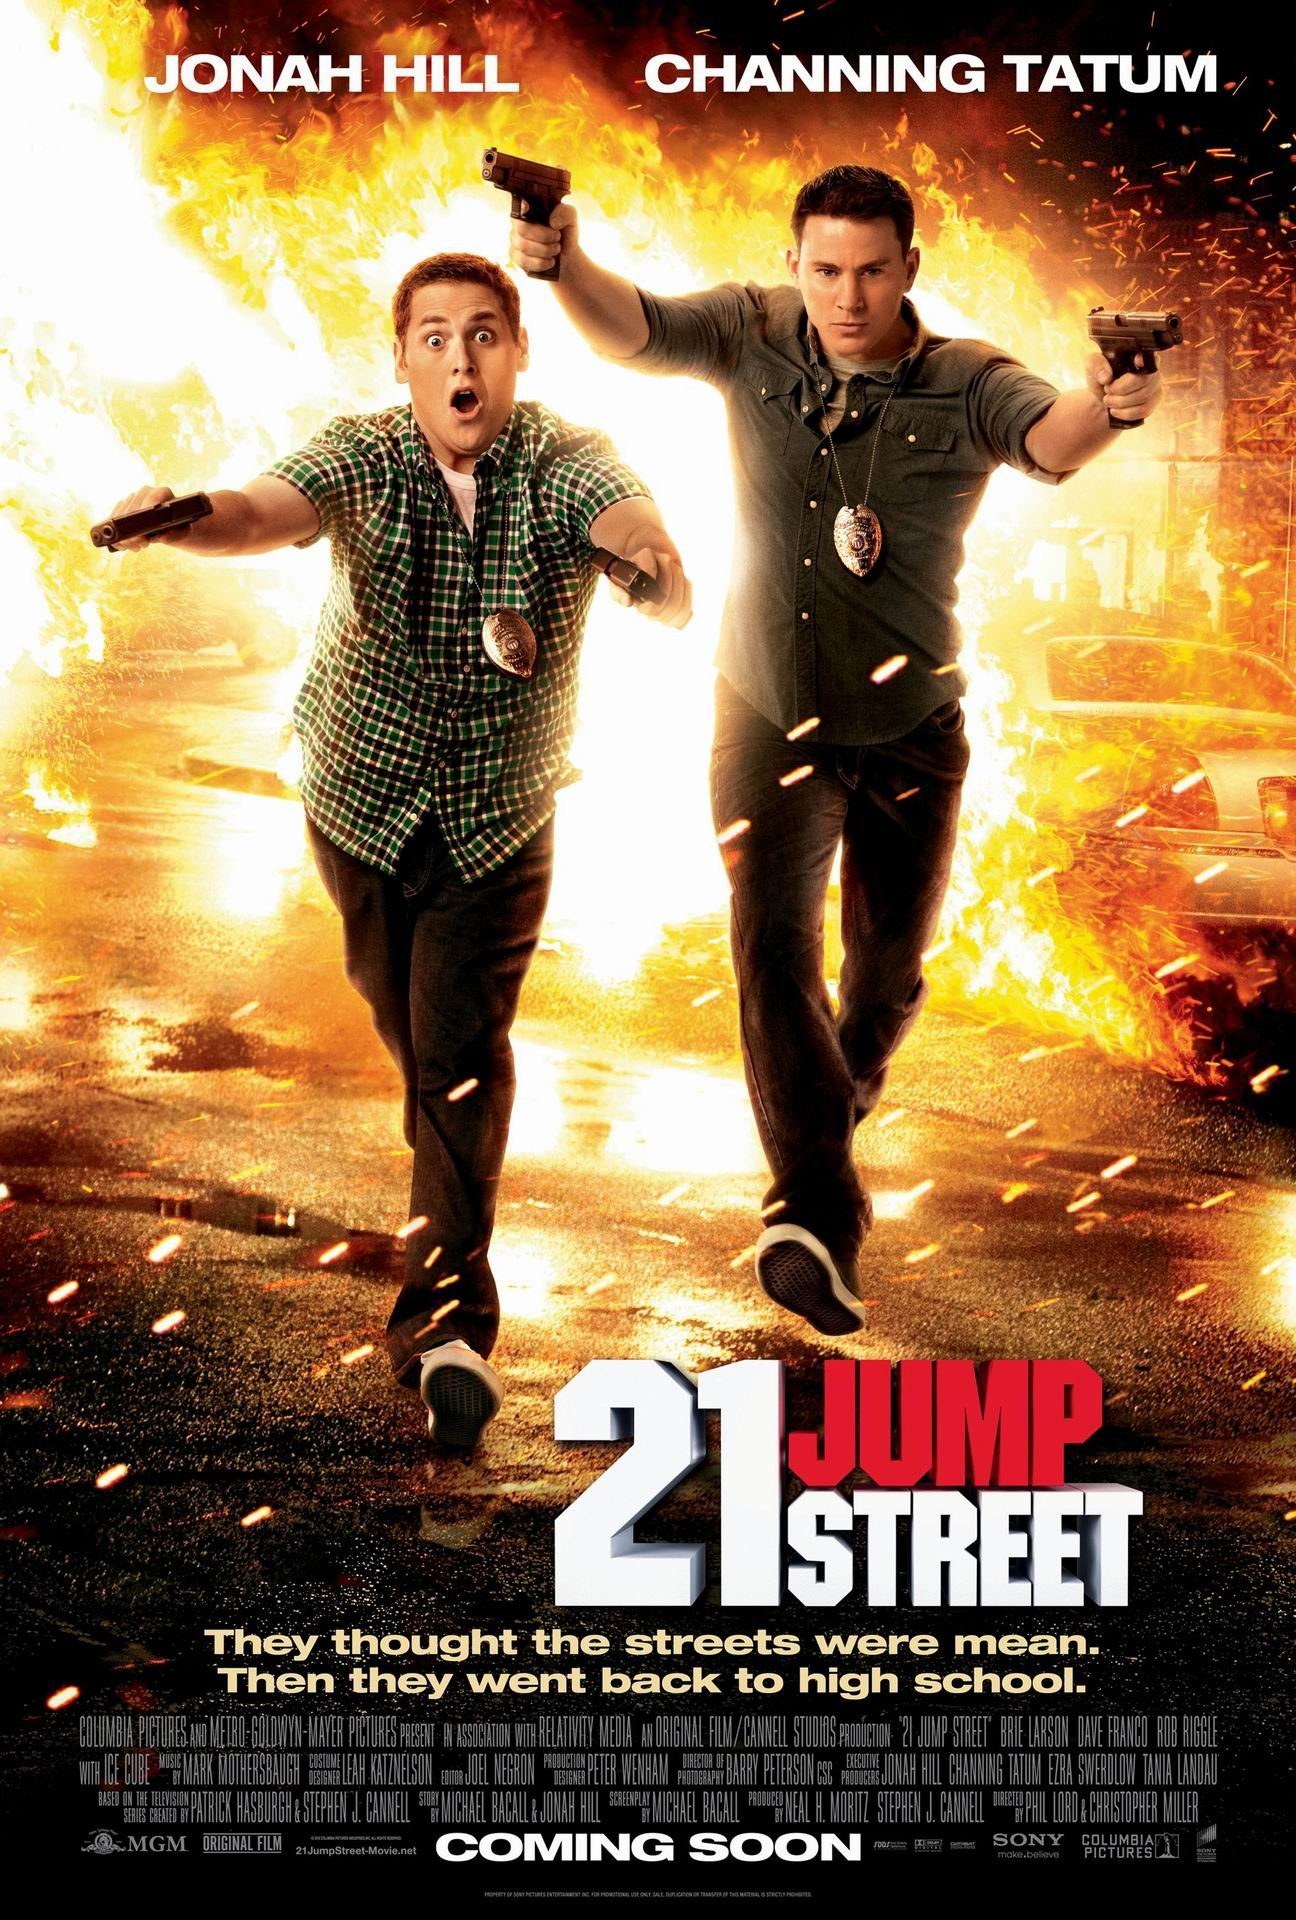 21 Jump Street (2012) Poster  Freemoviepostersnet. Booklet Template Free Download. Return Policy Template. Tri Fold Template Free. Best Sole Trader Invoice Template No Vat. Graduation Shirts For Family. Graduation Gifts For Engineers. Yearbook Page Template. Football Flyer Template Free